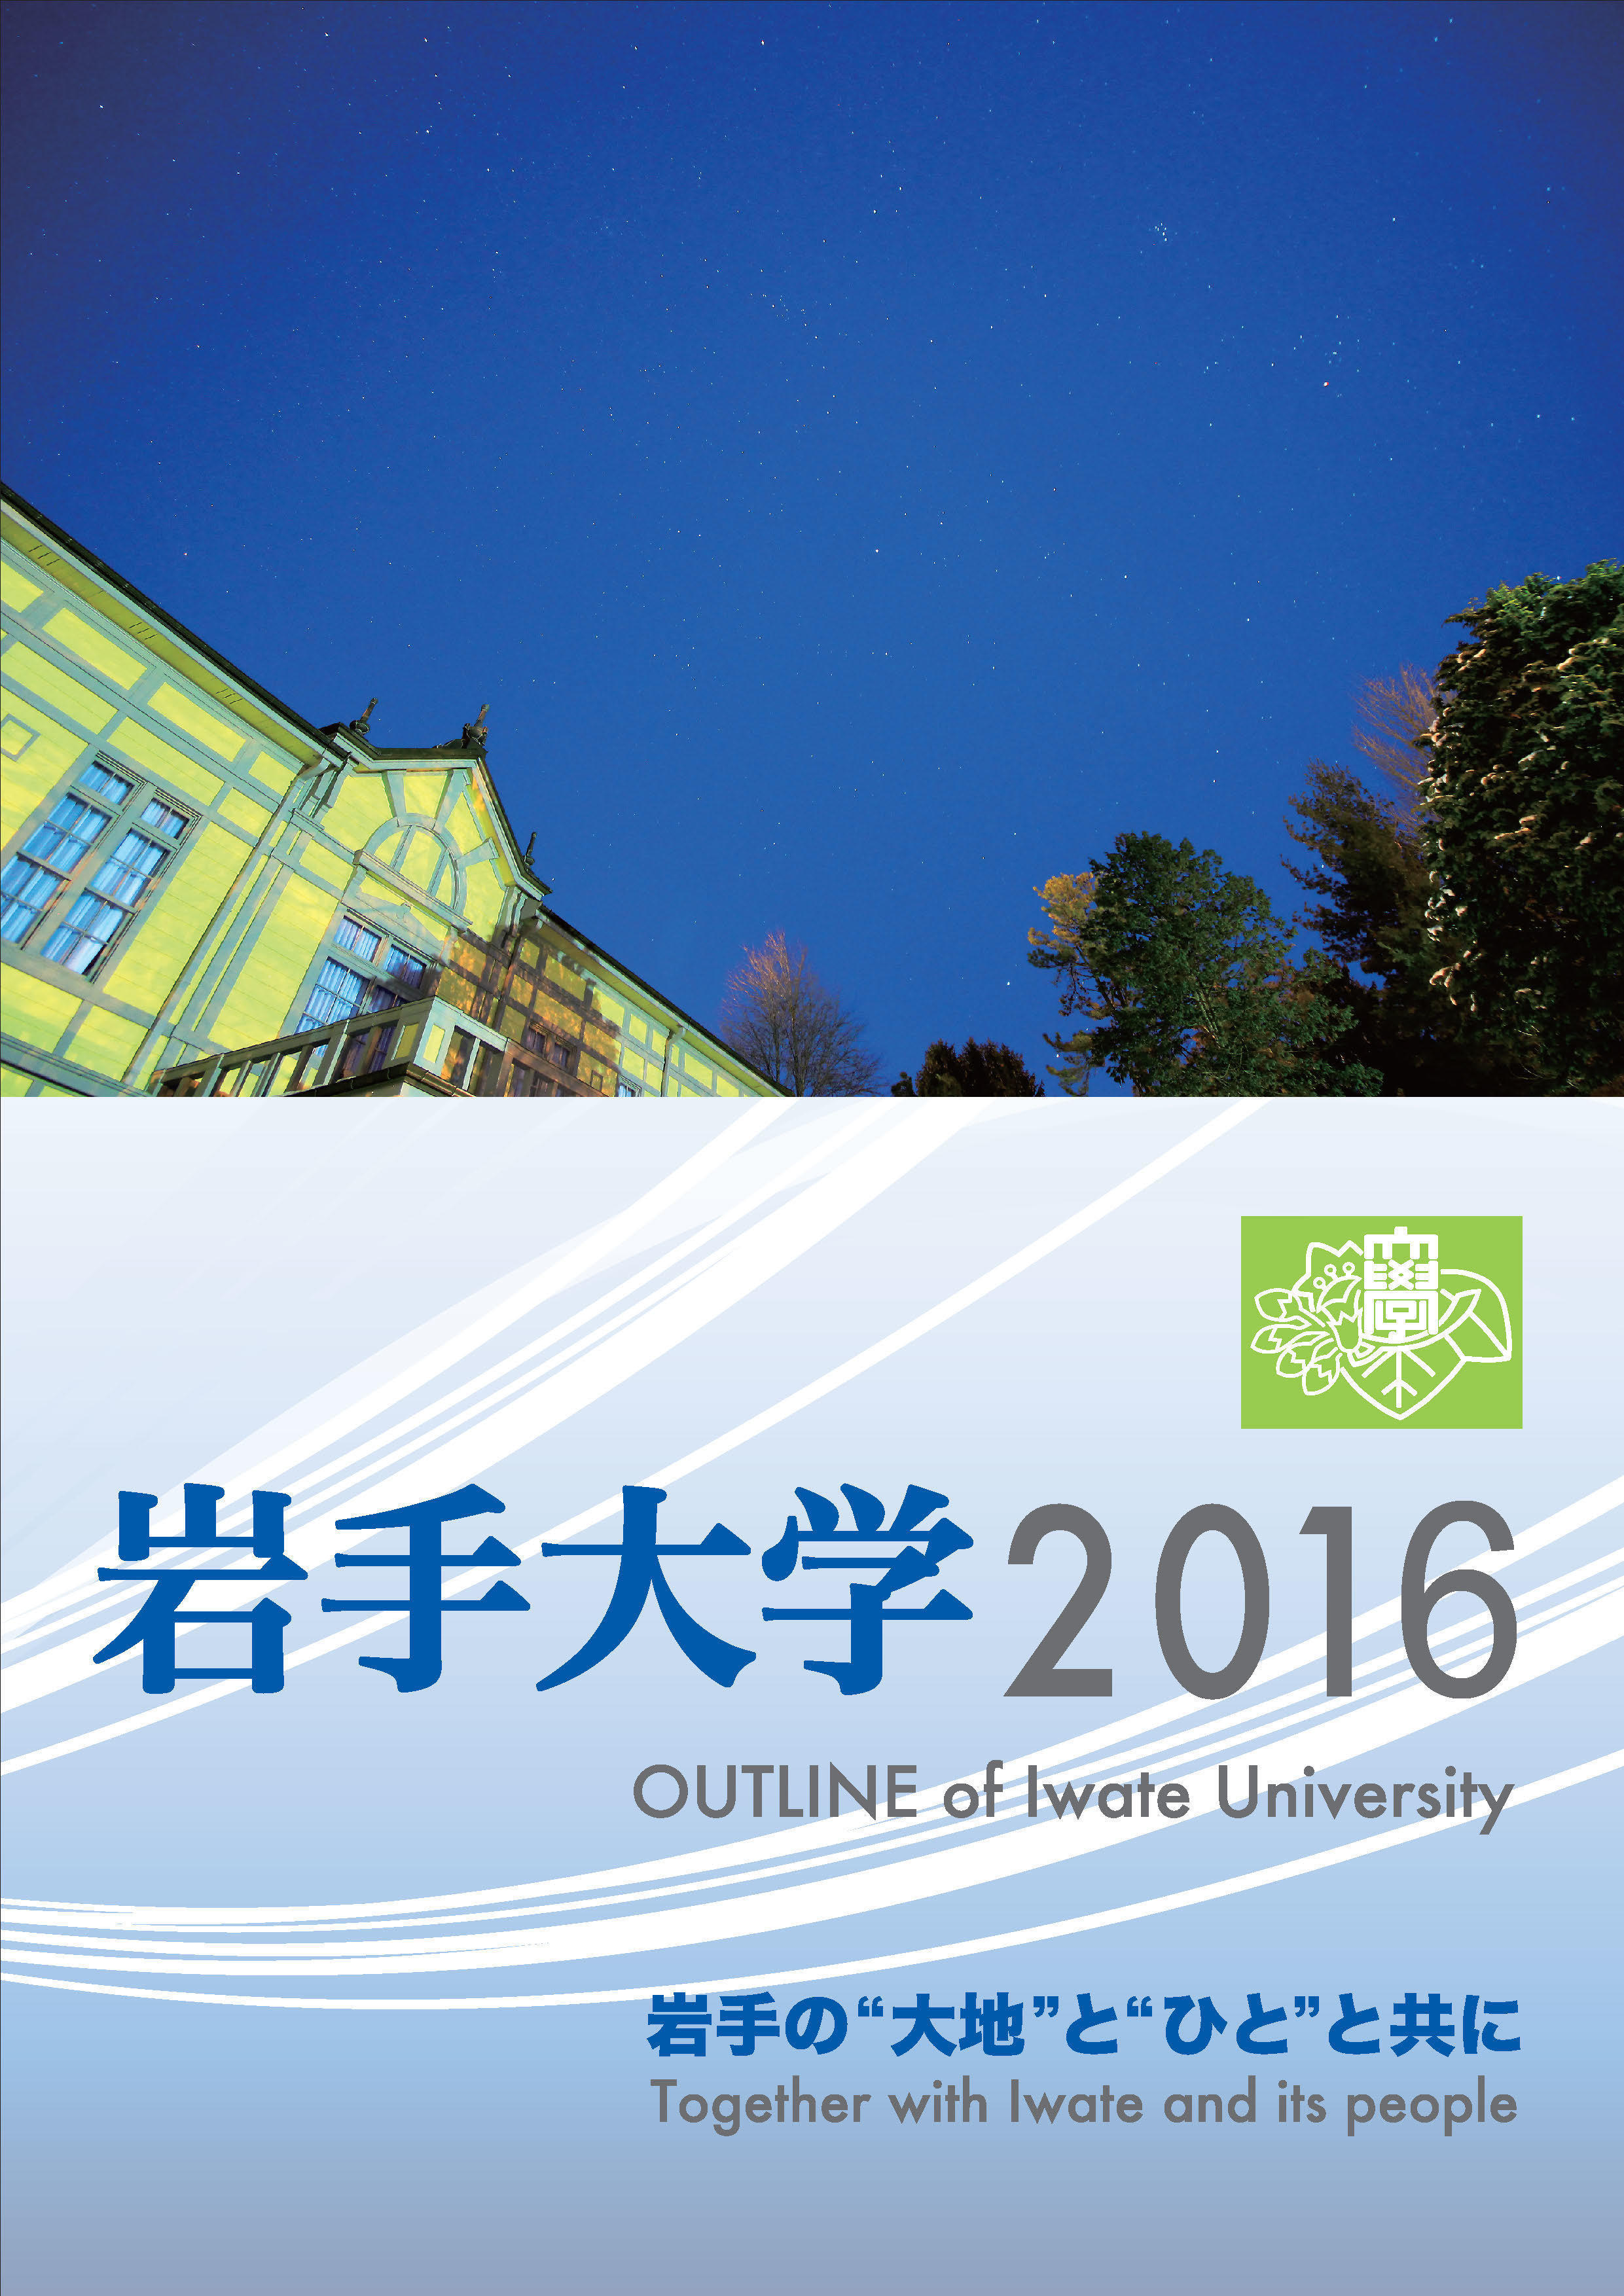 Outline of Iwate University (2016)